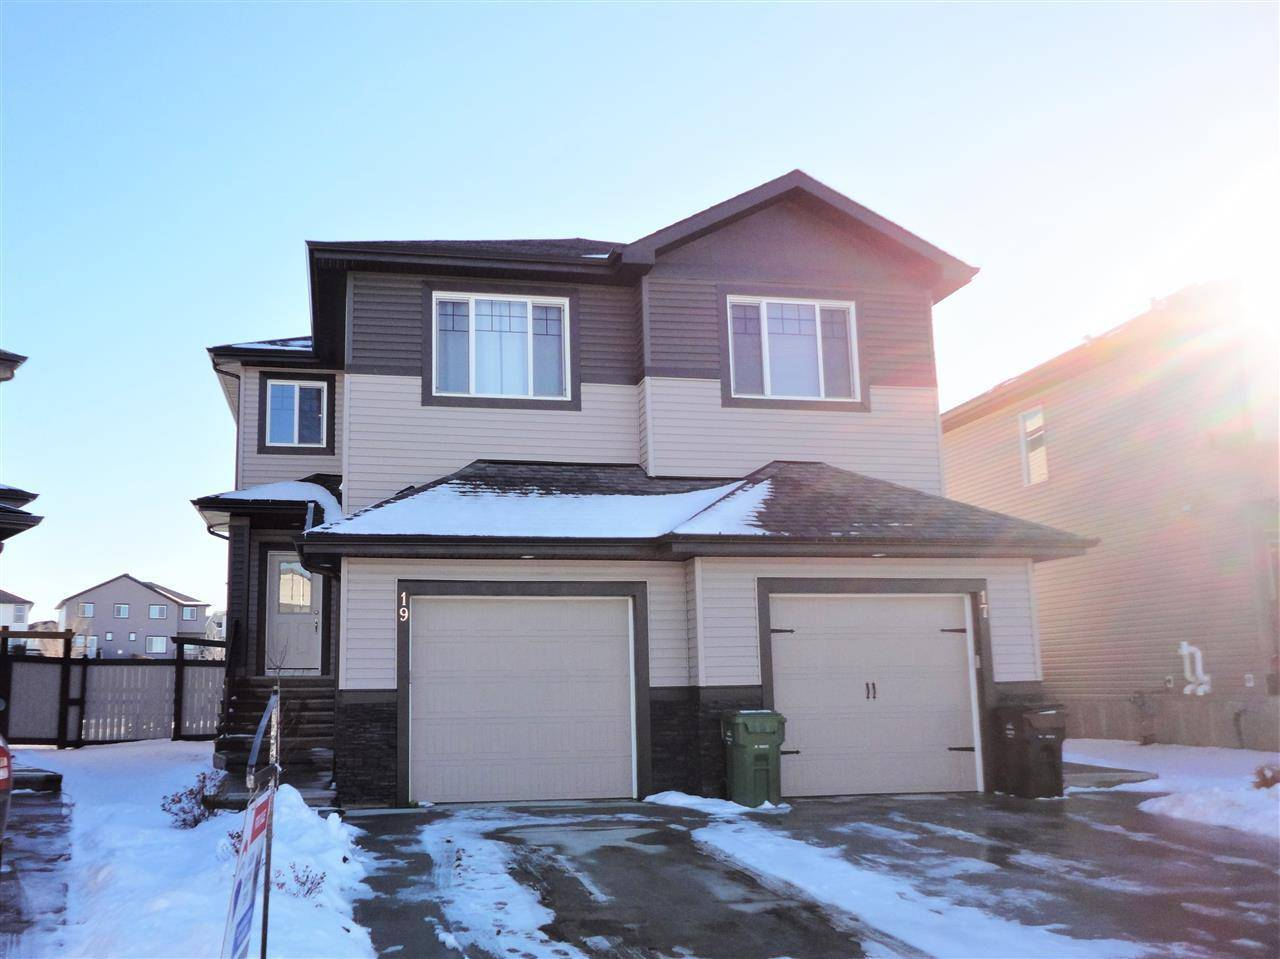 Townhouse for sale at 19 Mclean Ct Leduc Alberta - MLS: E4178056